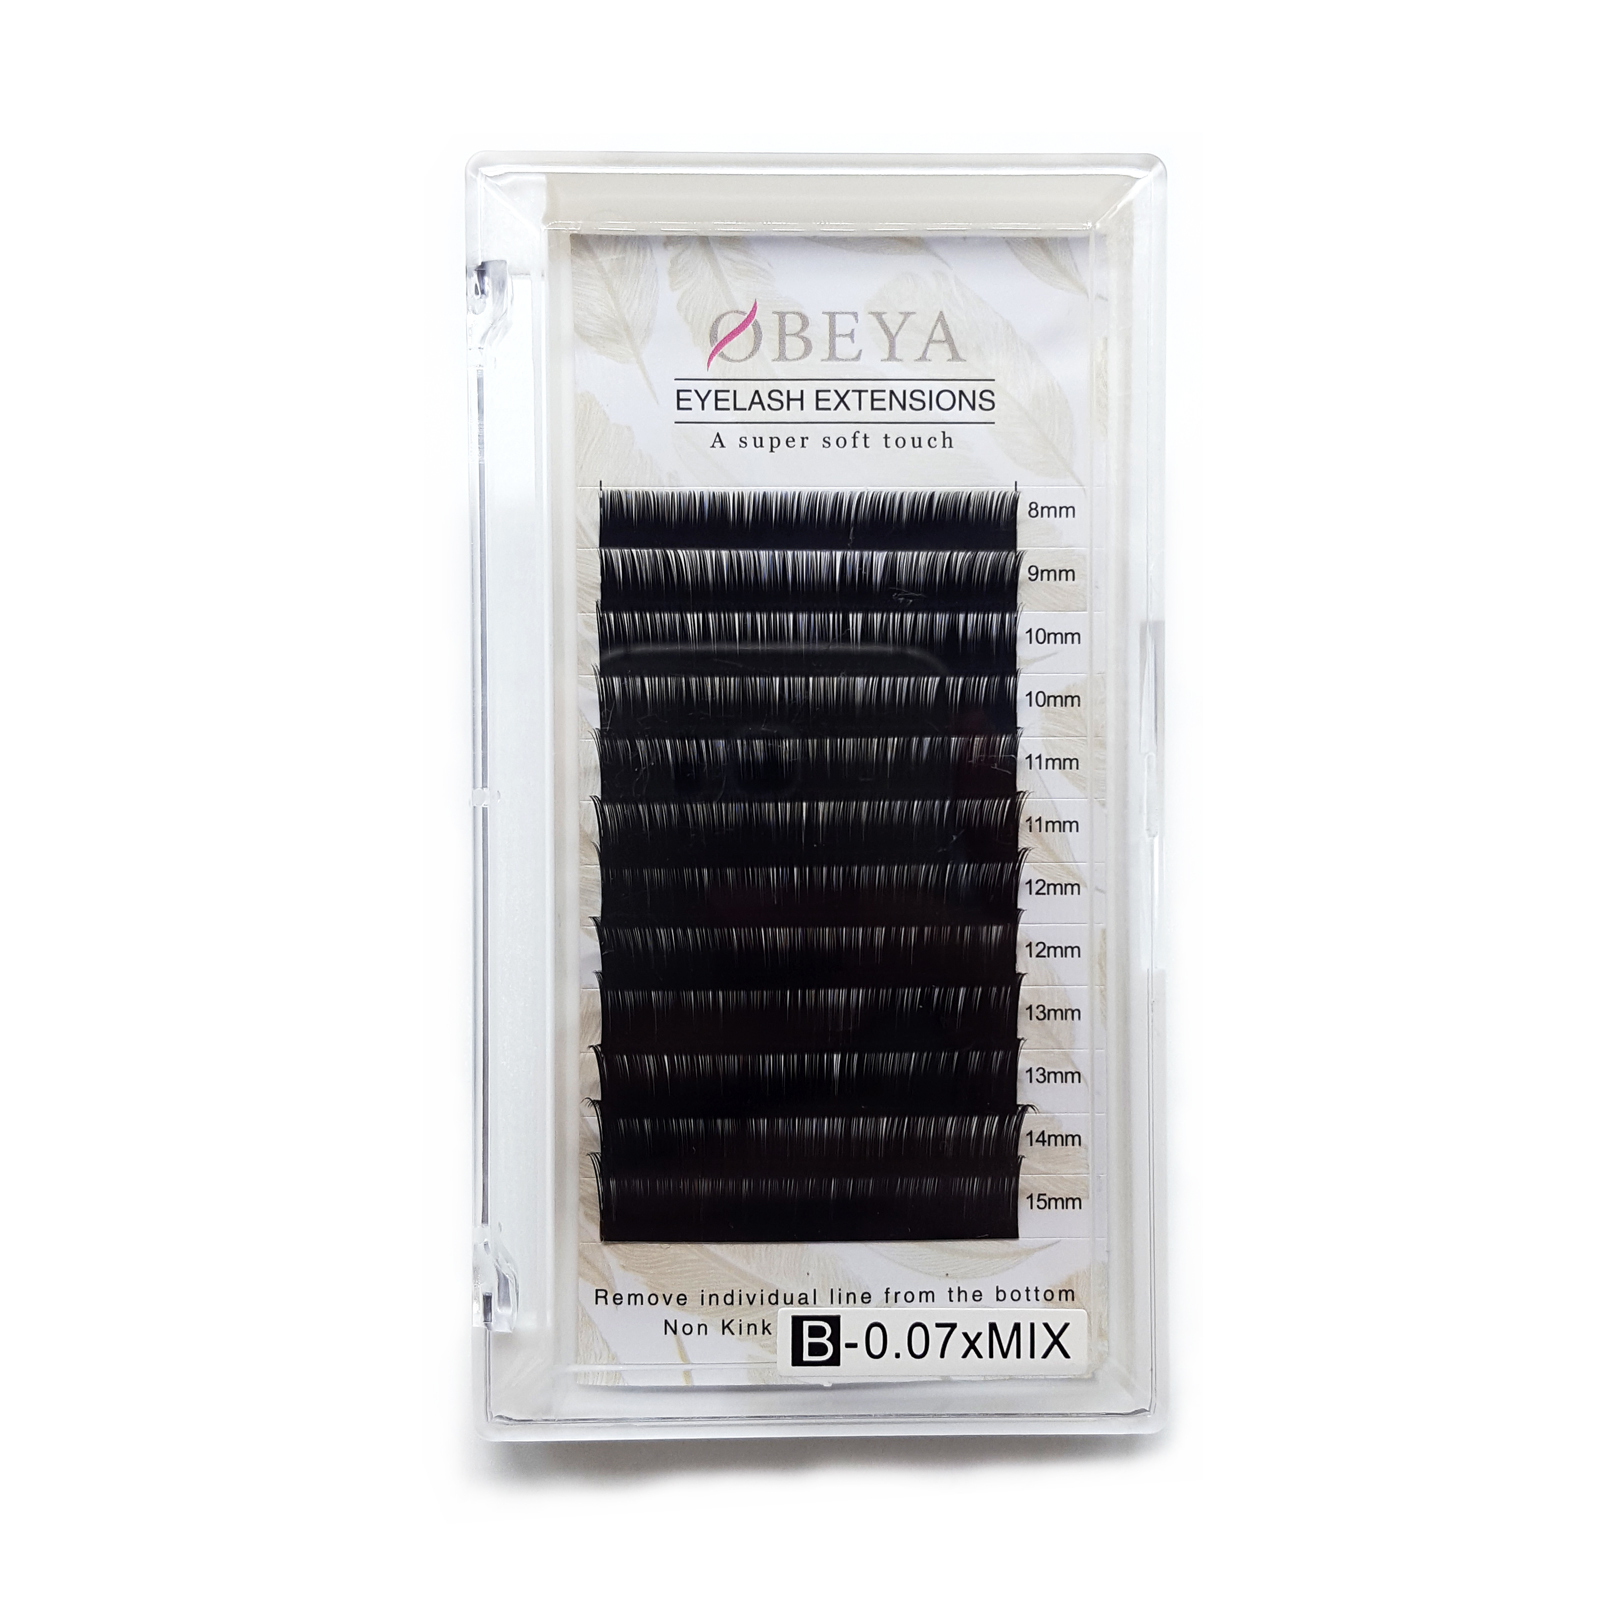 Fast Delivery for Korea PBT Fiber Russian Volume Eyelash Extension 0.03-0.25mm Thickness Lashes in the US/UK YY89